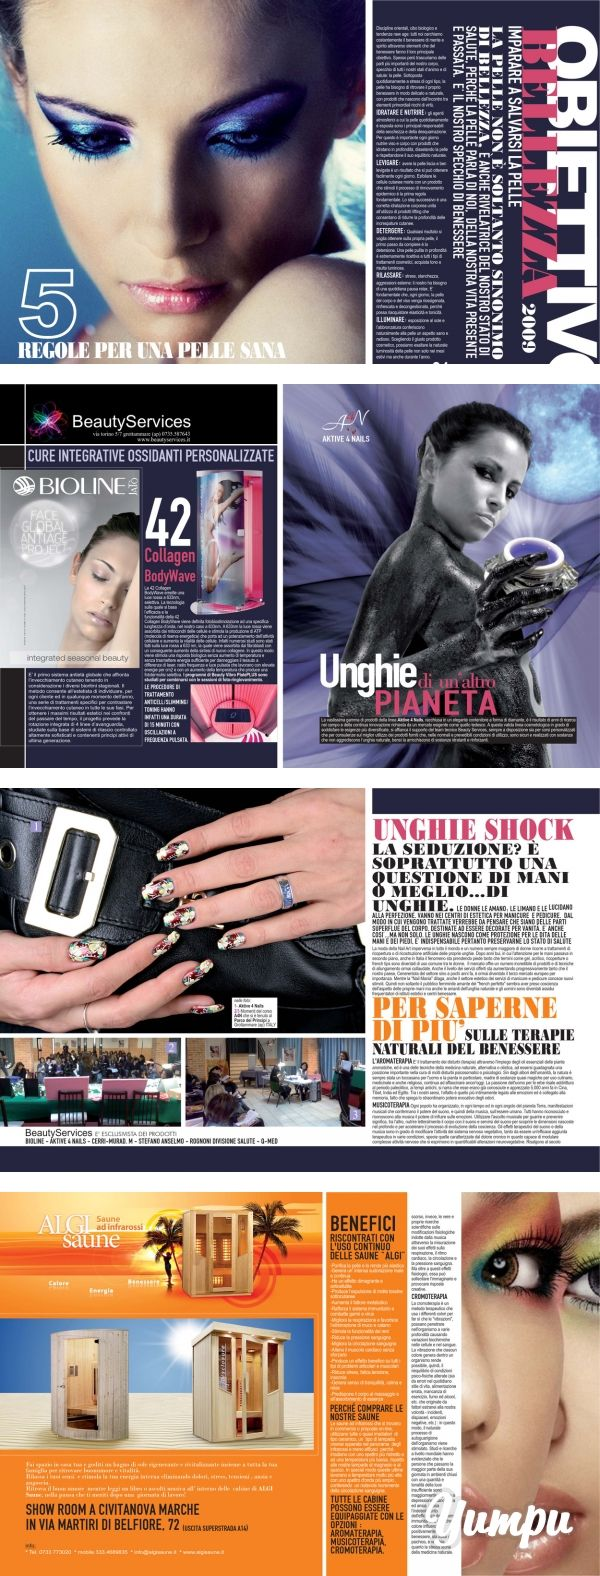 Mixer - Donna Impresa Magazine - Magazine with 4 pages: Mixer - Donna Impresa Magazine